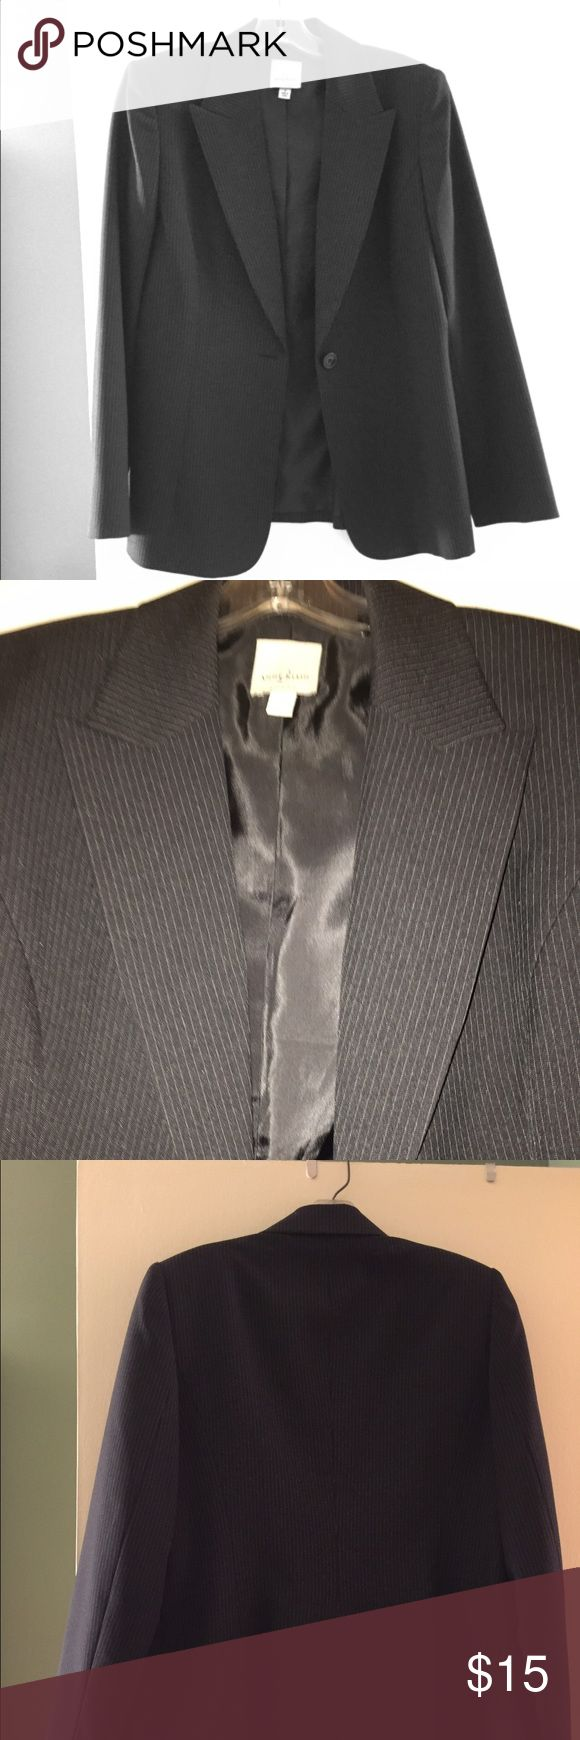 Price Break Women's Anne Klein Suit Jacket This jacket is a classic that never goes out of style. Beautiful pinstripe jacket by Anne Klein Anne Klein Jackets & Coats Blazers